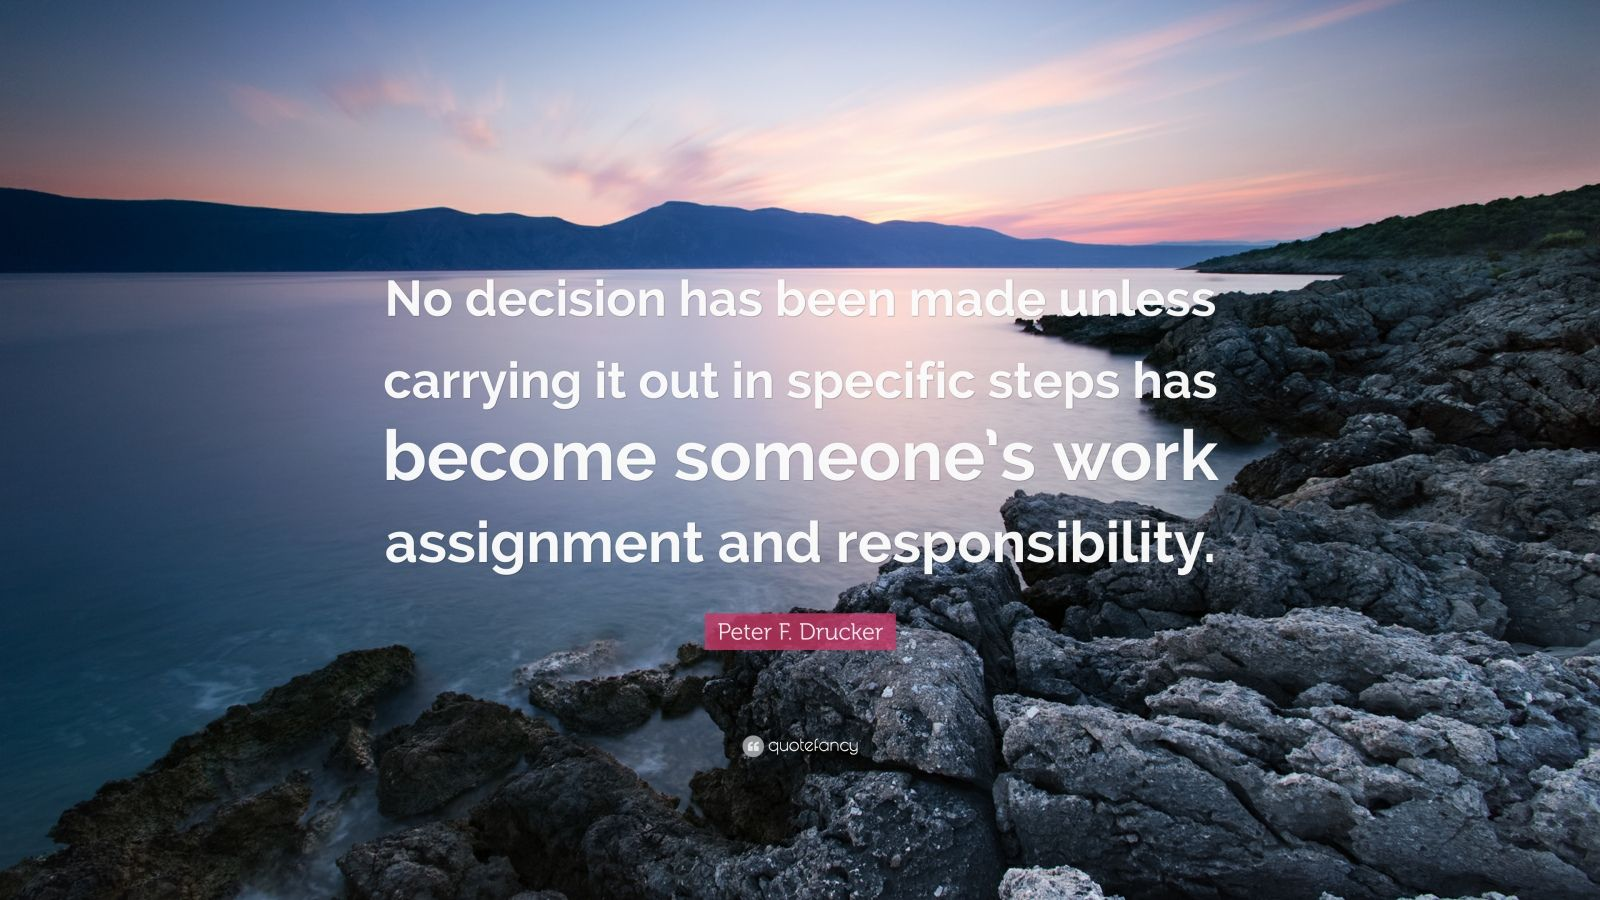 """Peter F. Drucker Quote: """"No decision has been made unless carrying it out in specific steps has become someone's work assignment and responsibility."""""""